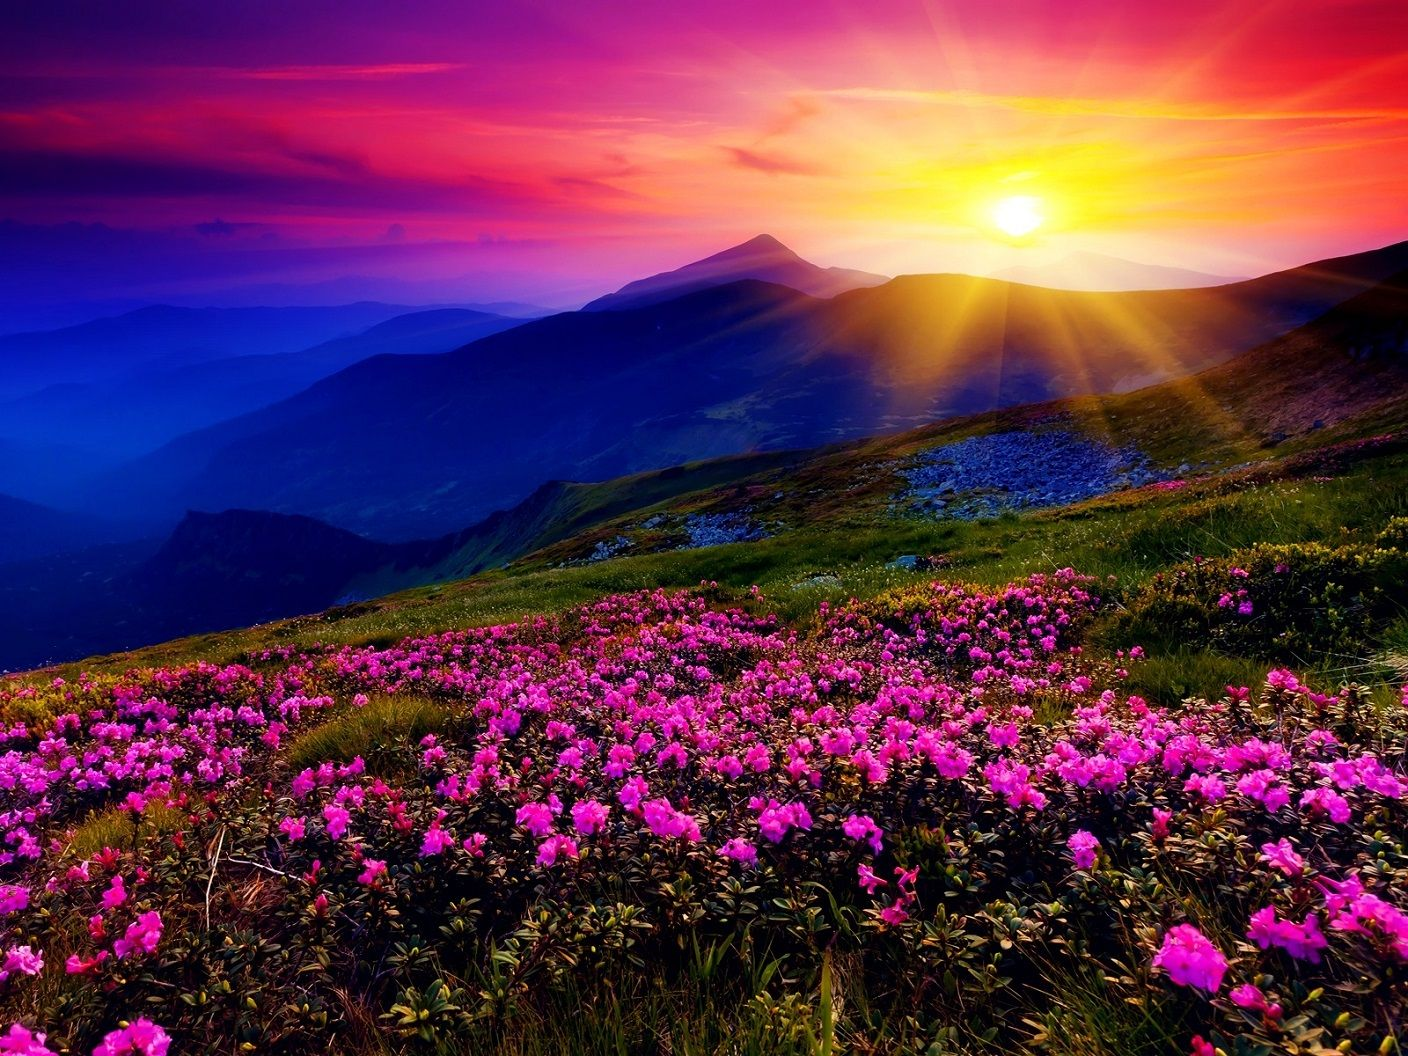 Colorful Mountain Sunrise Unknown Location 1408 X 1056 Mountain Landscape Valley Of Flowers Beautiful Landscapes